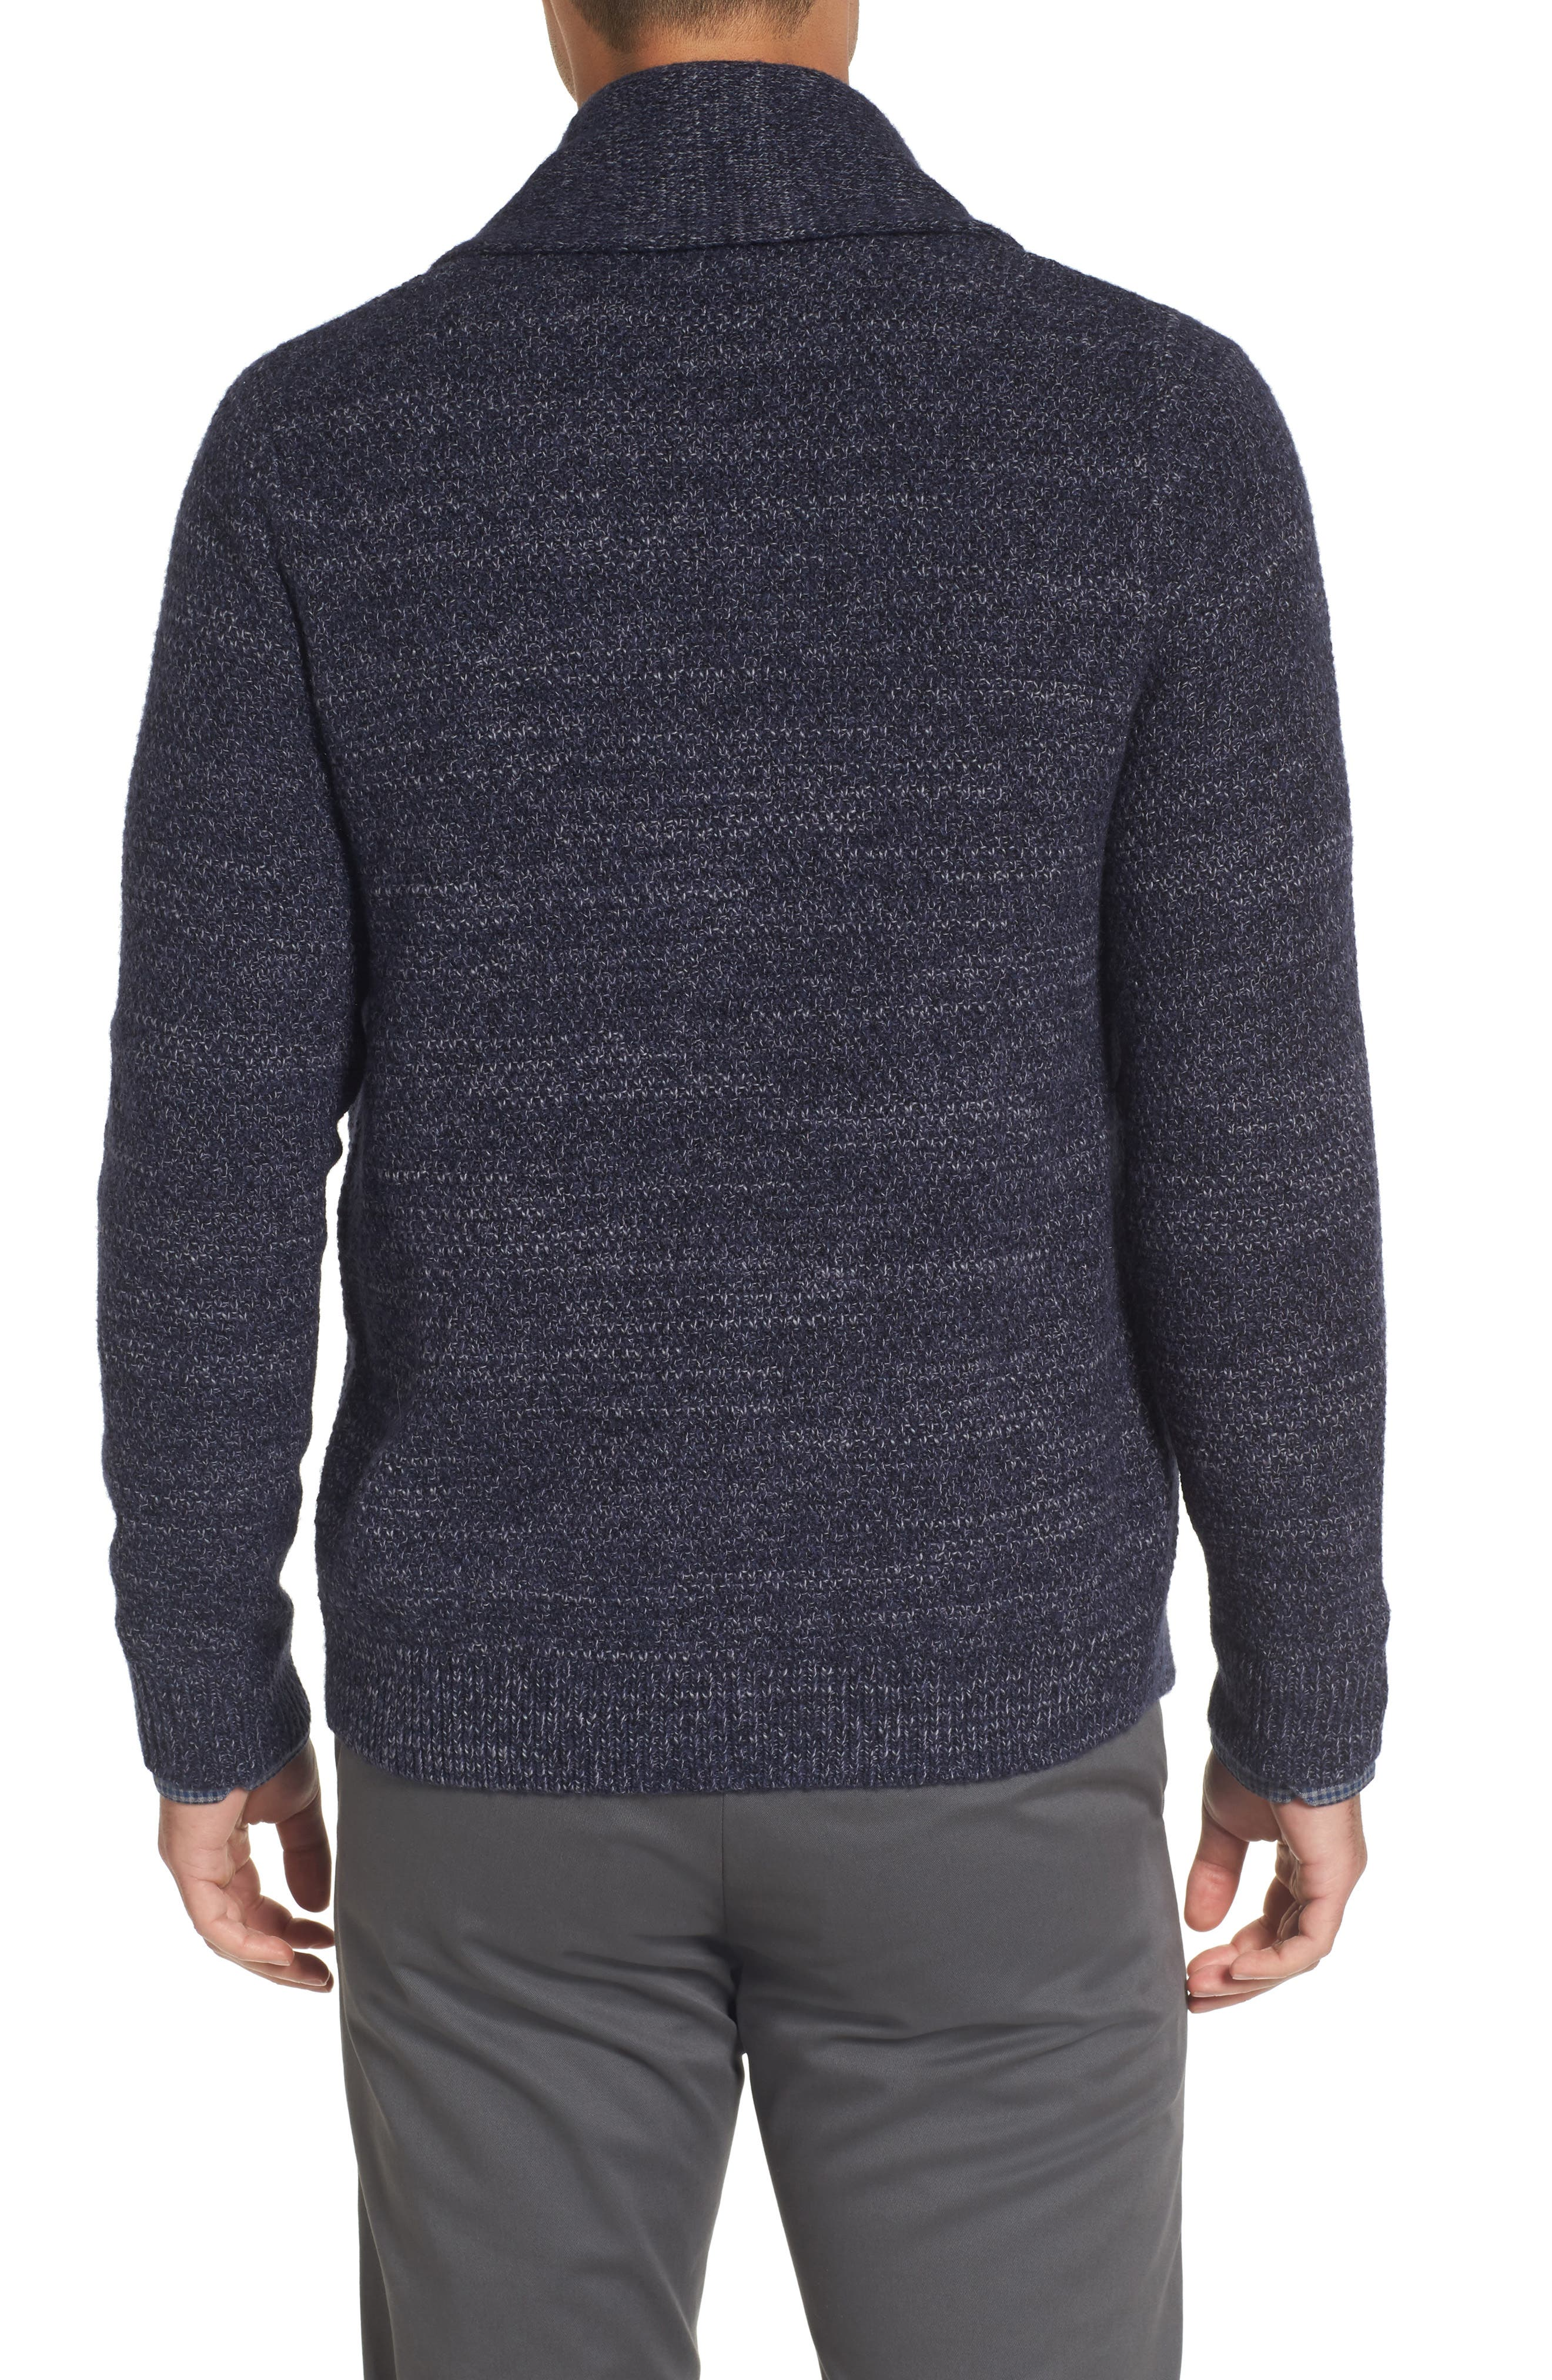 Shawl Collar Cardigan,                             Alternate thumbnail 2, color,                             Navy Iris Combo